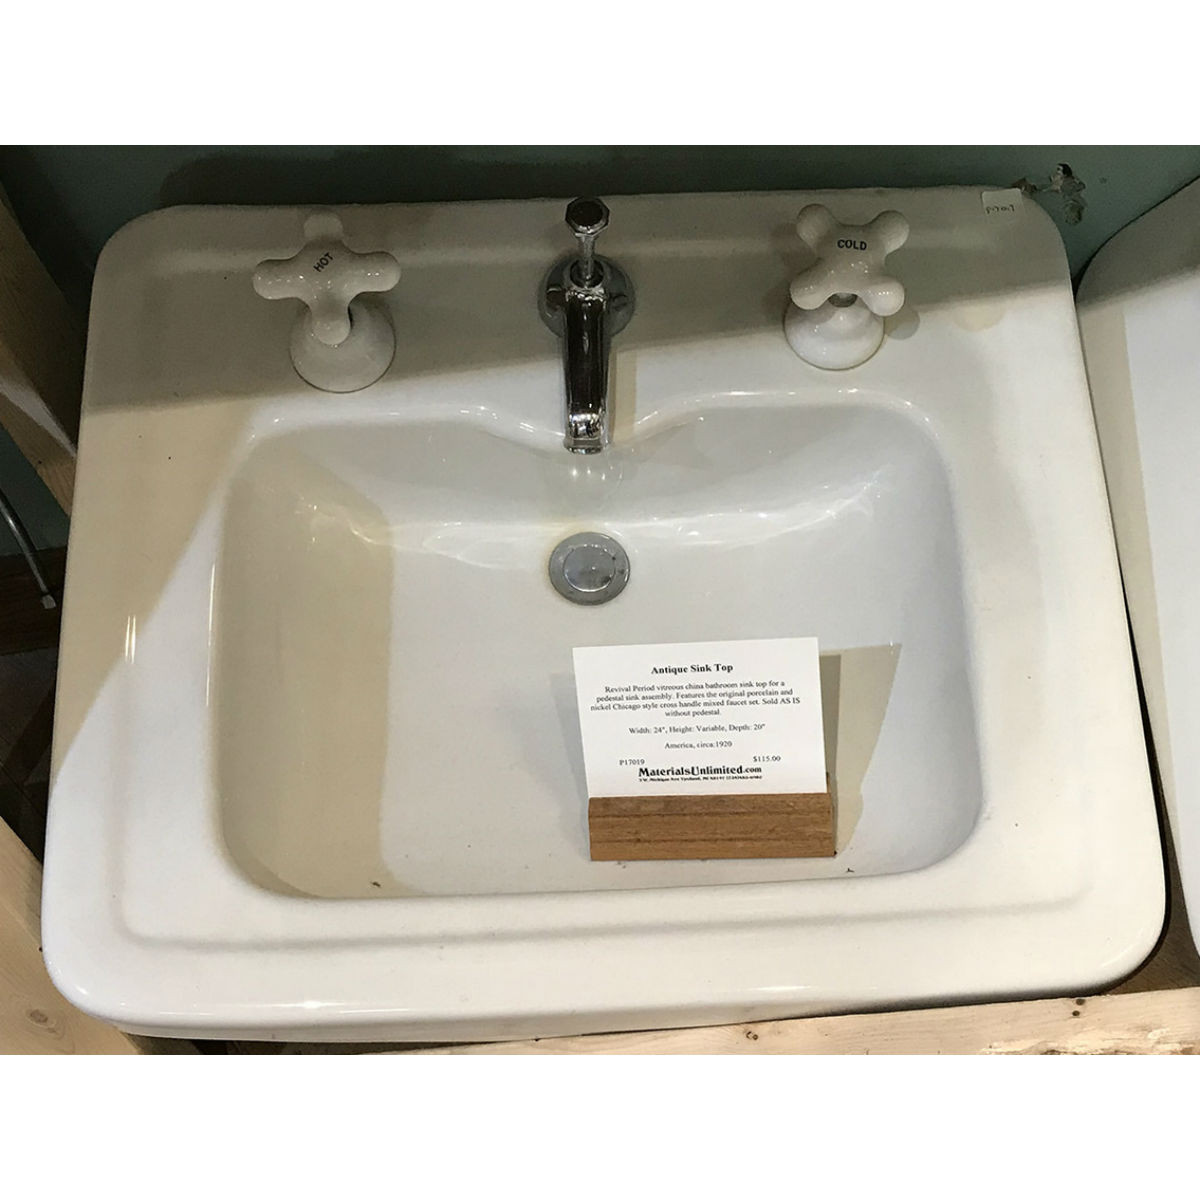 P17019 - Antique Revival Period Vitreous China Bathroom Sink